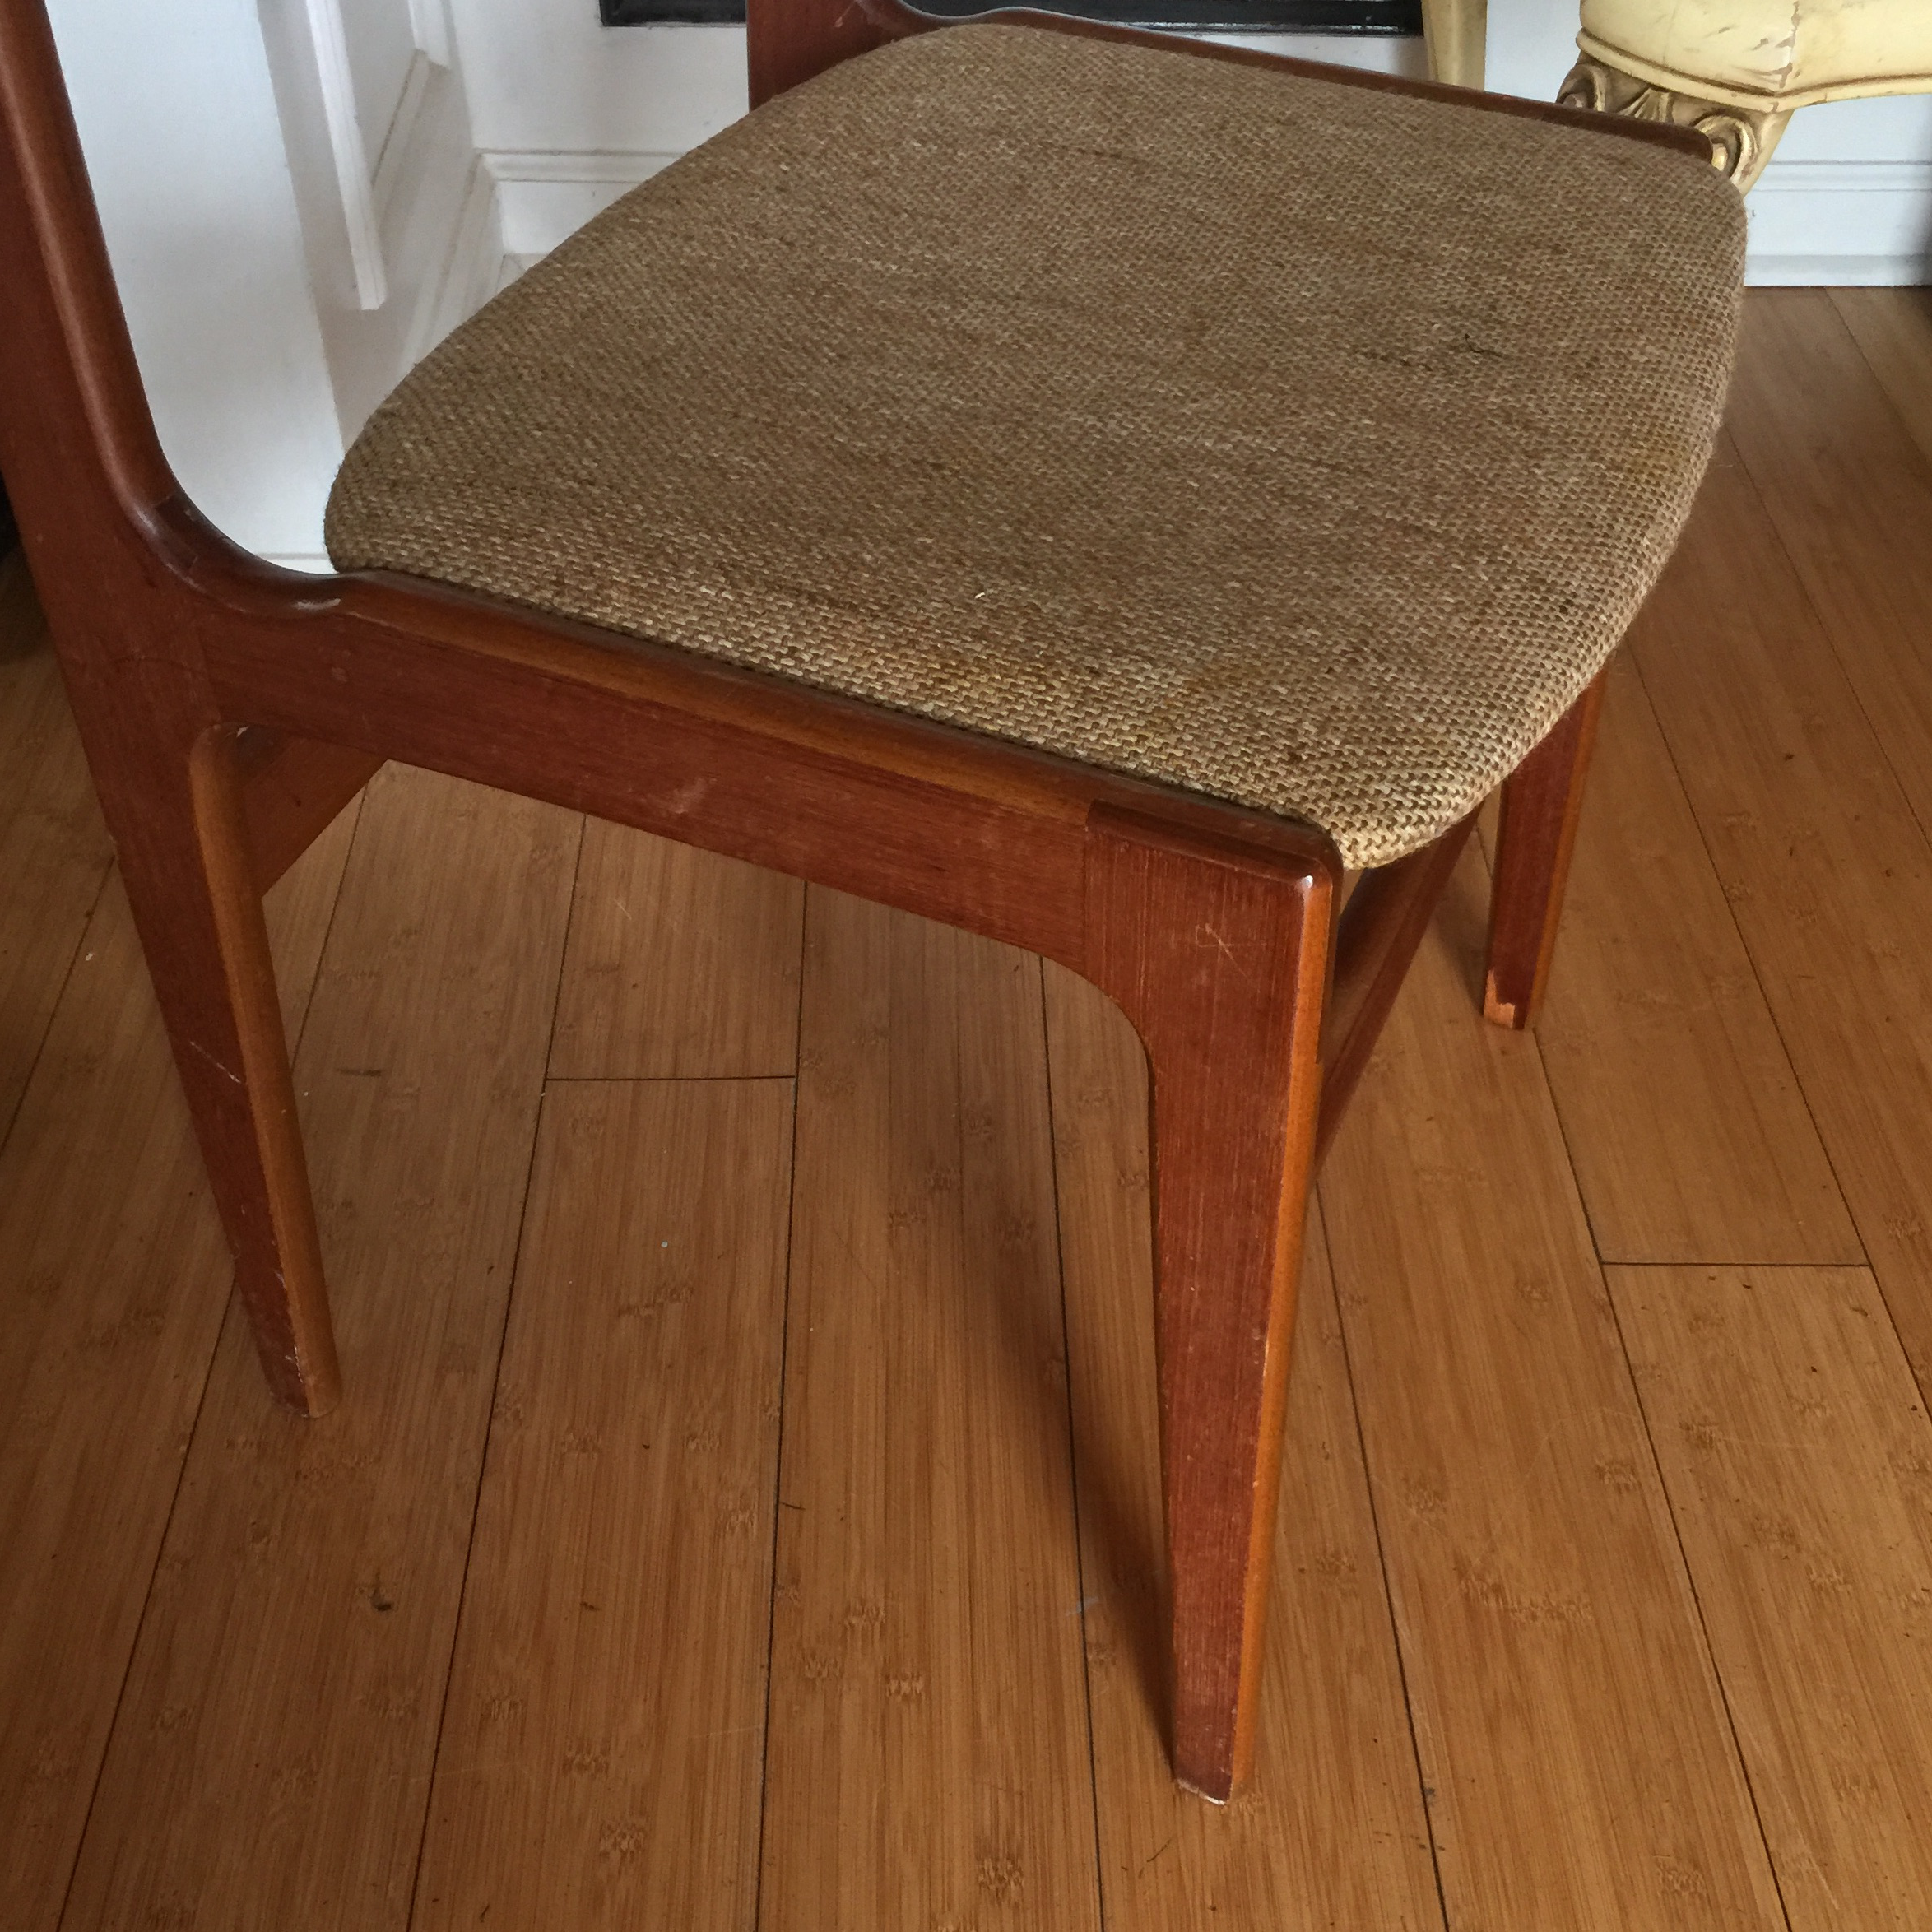 Merveilleux Vintage Scandinavian Mid Century Wool Upholstered Chair For Sale In Atlanta    Image 6 Of 8